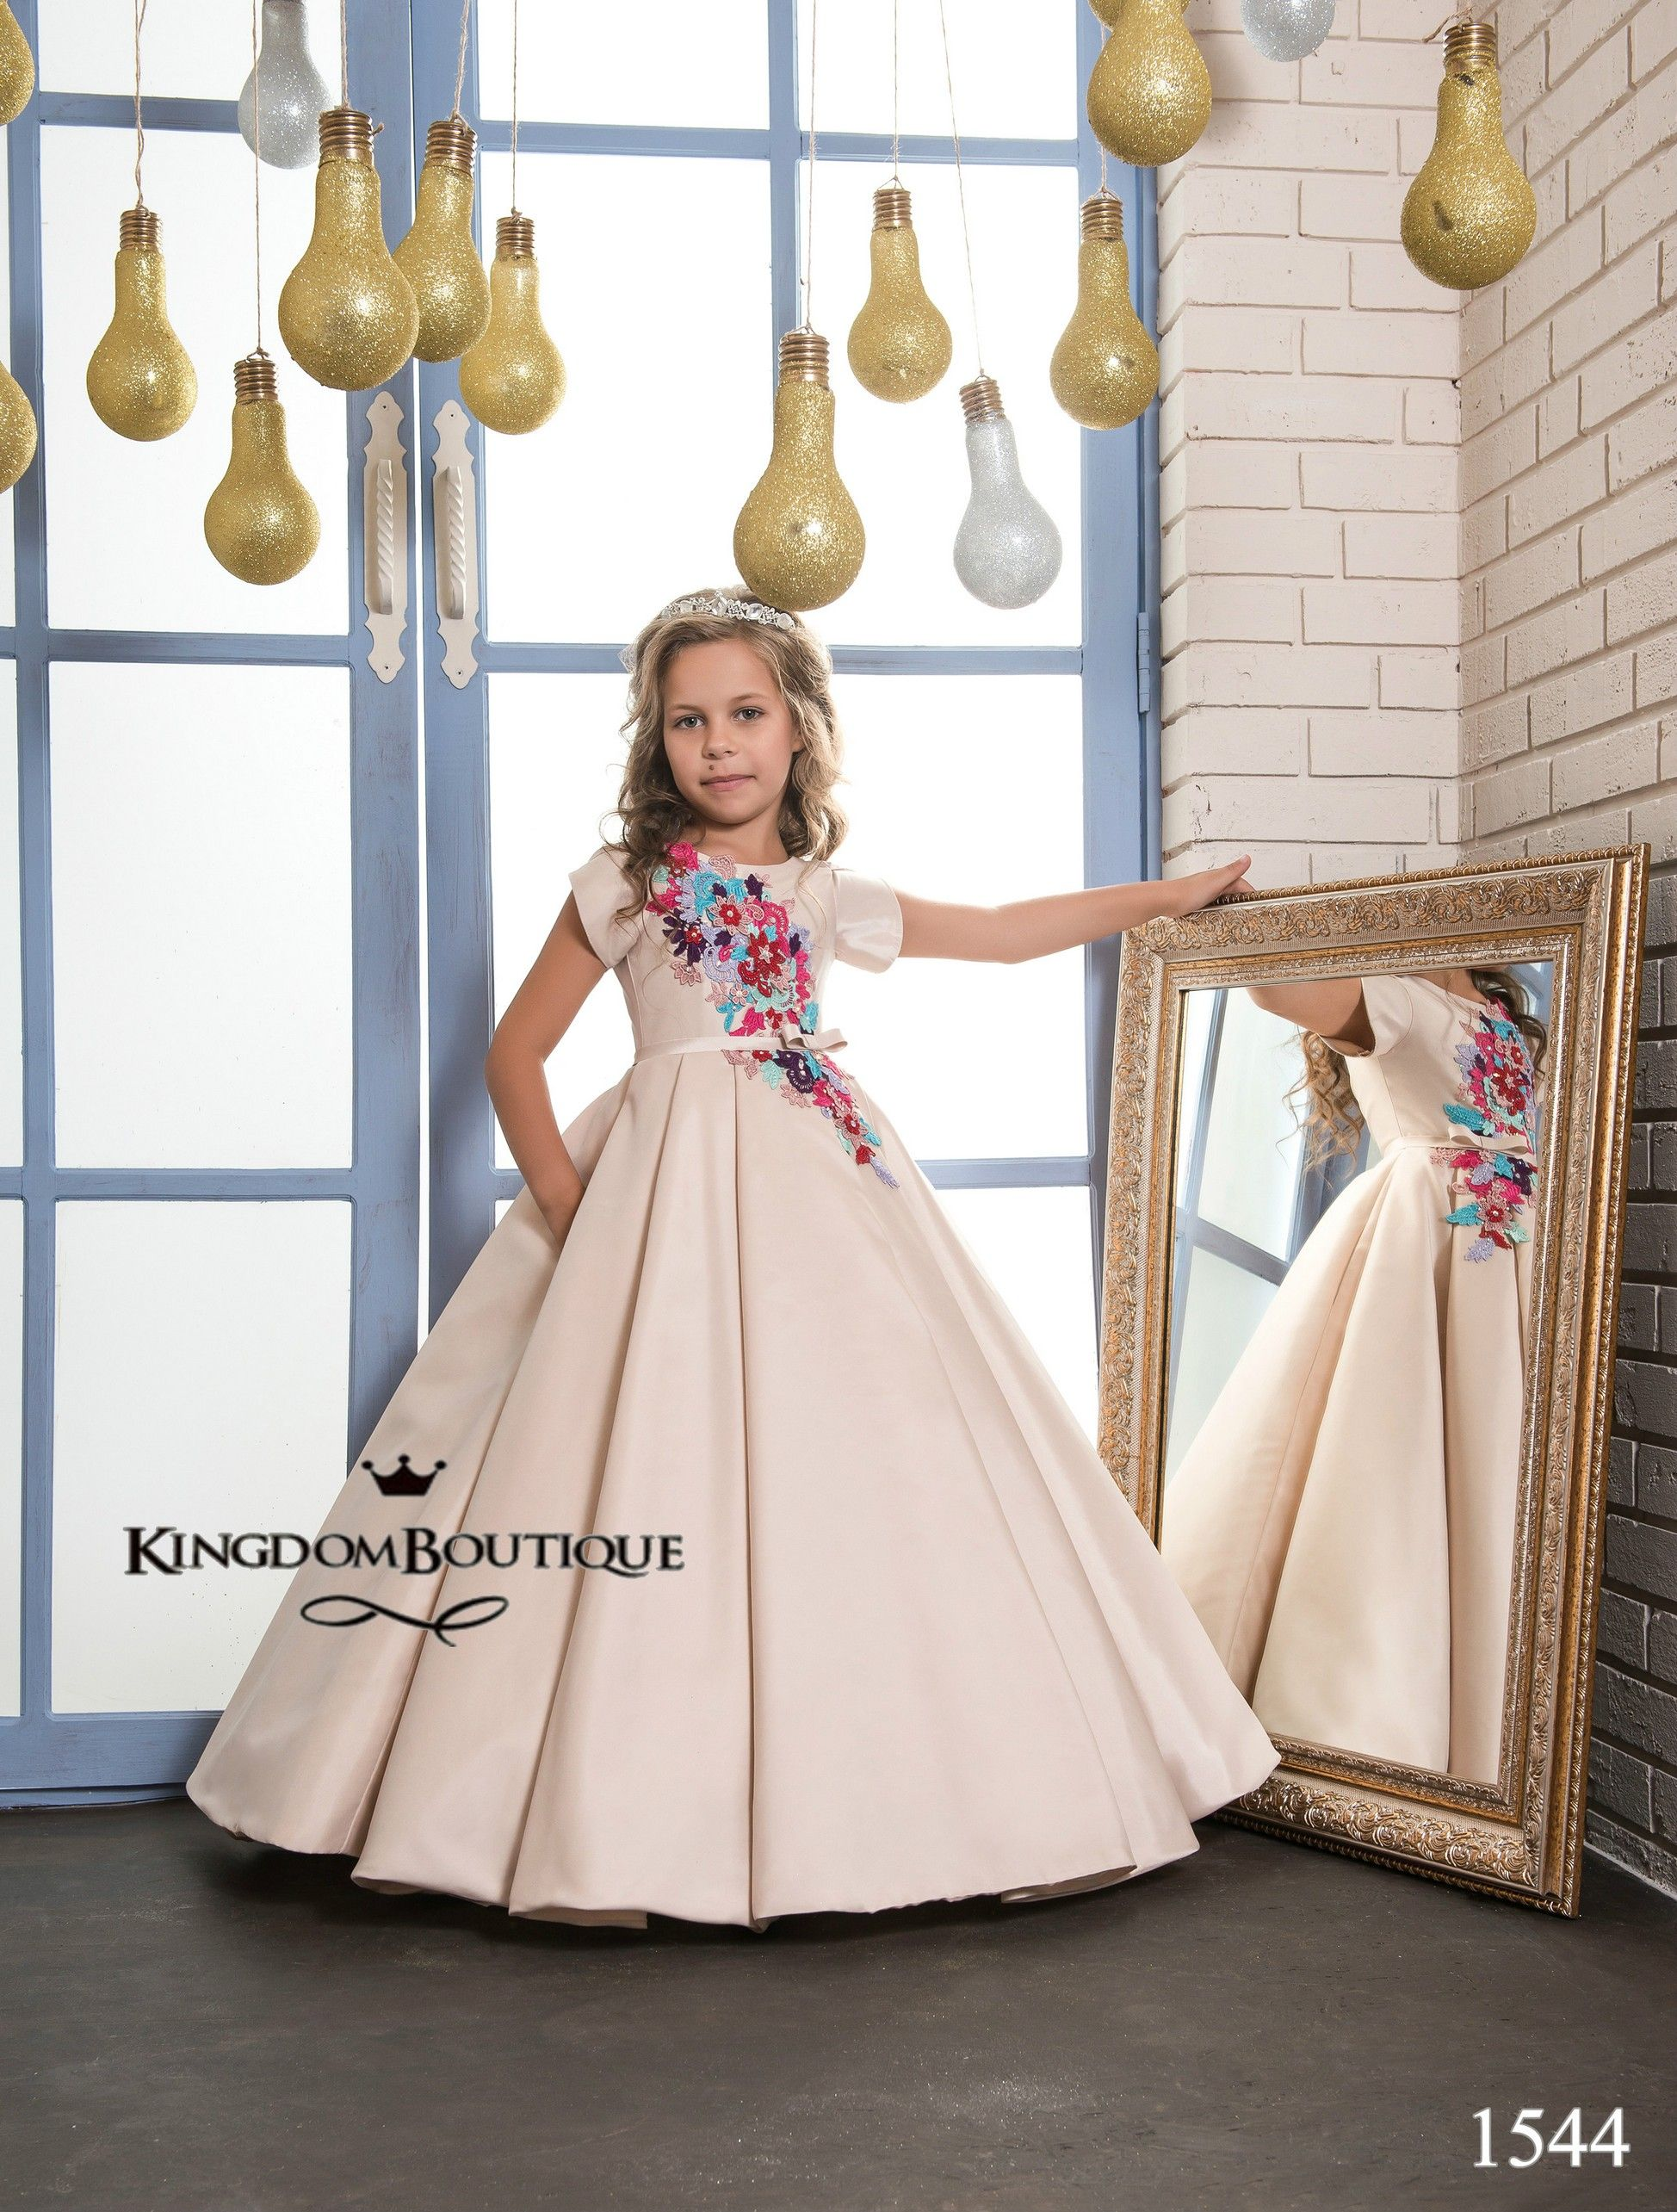 Cappuccino Kingdom Boutique children's gowns for special ...